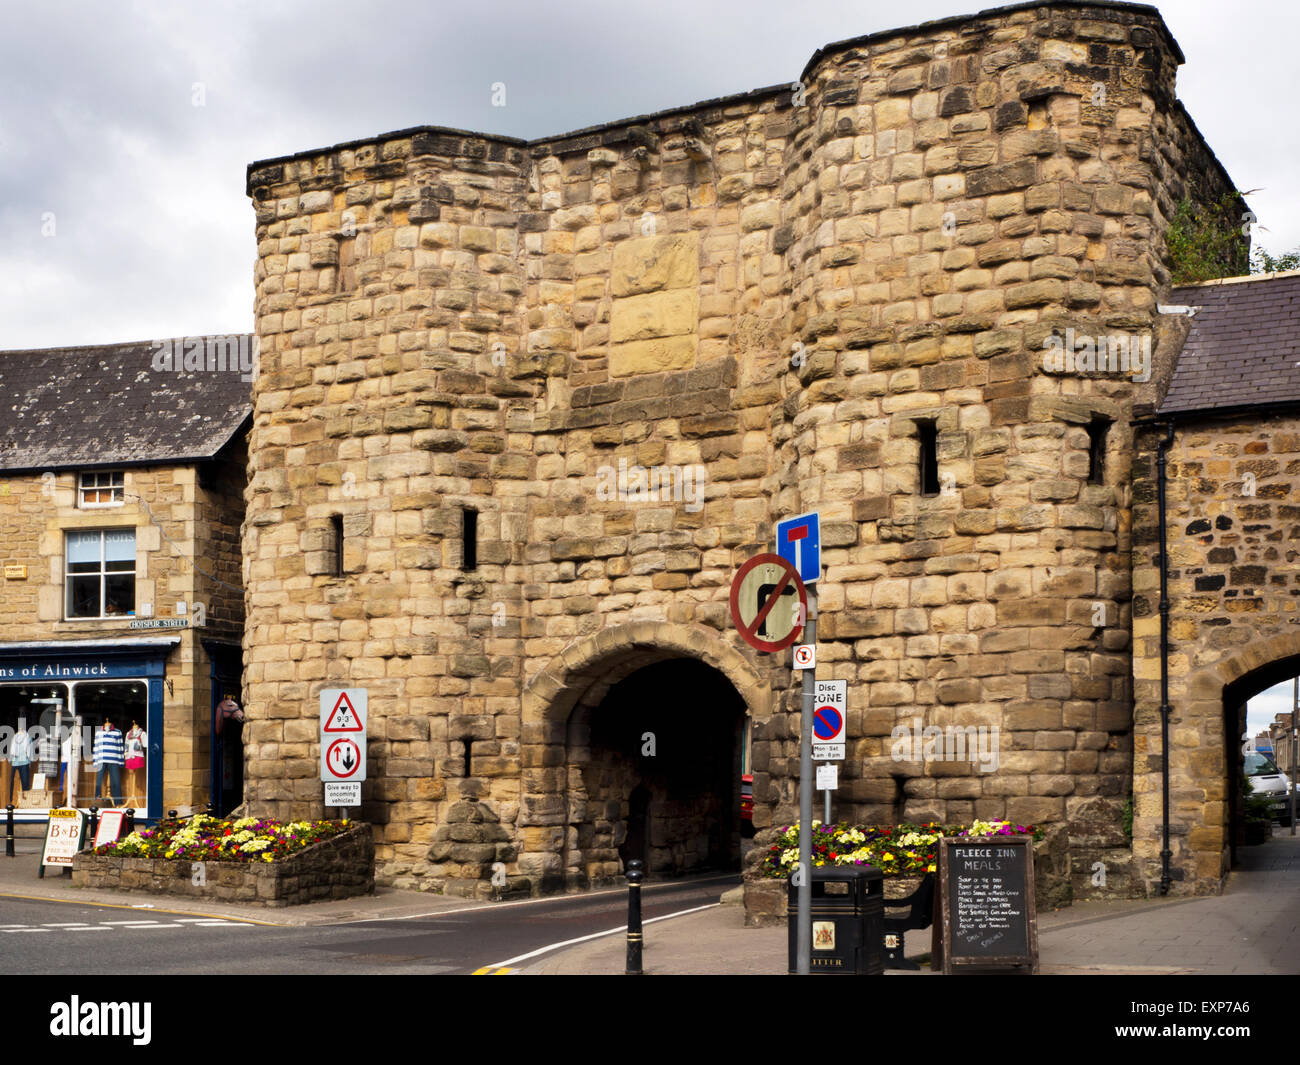 Bondgate Tower part of the 15th Century Town Walls at Alnwick Northumberland England - Stock Image